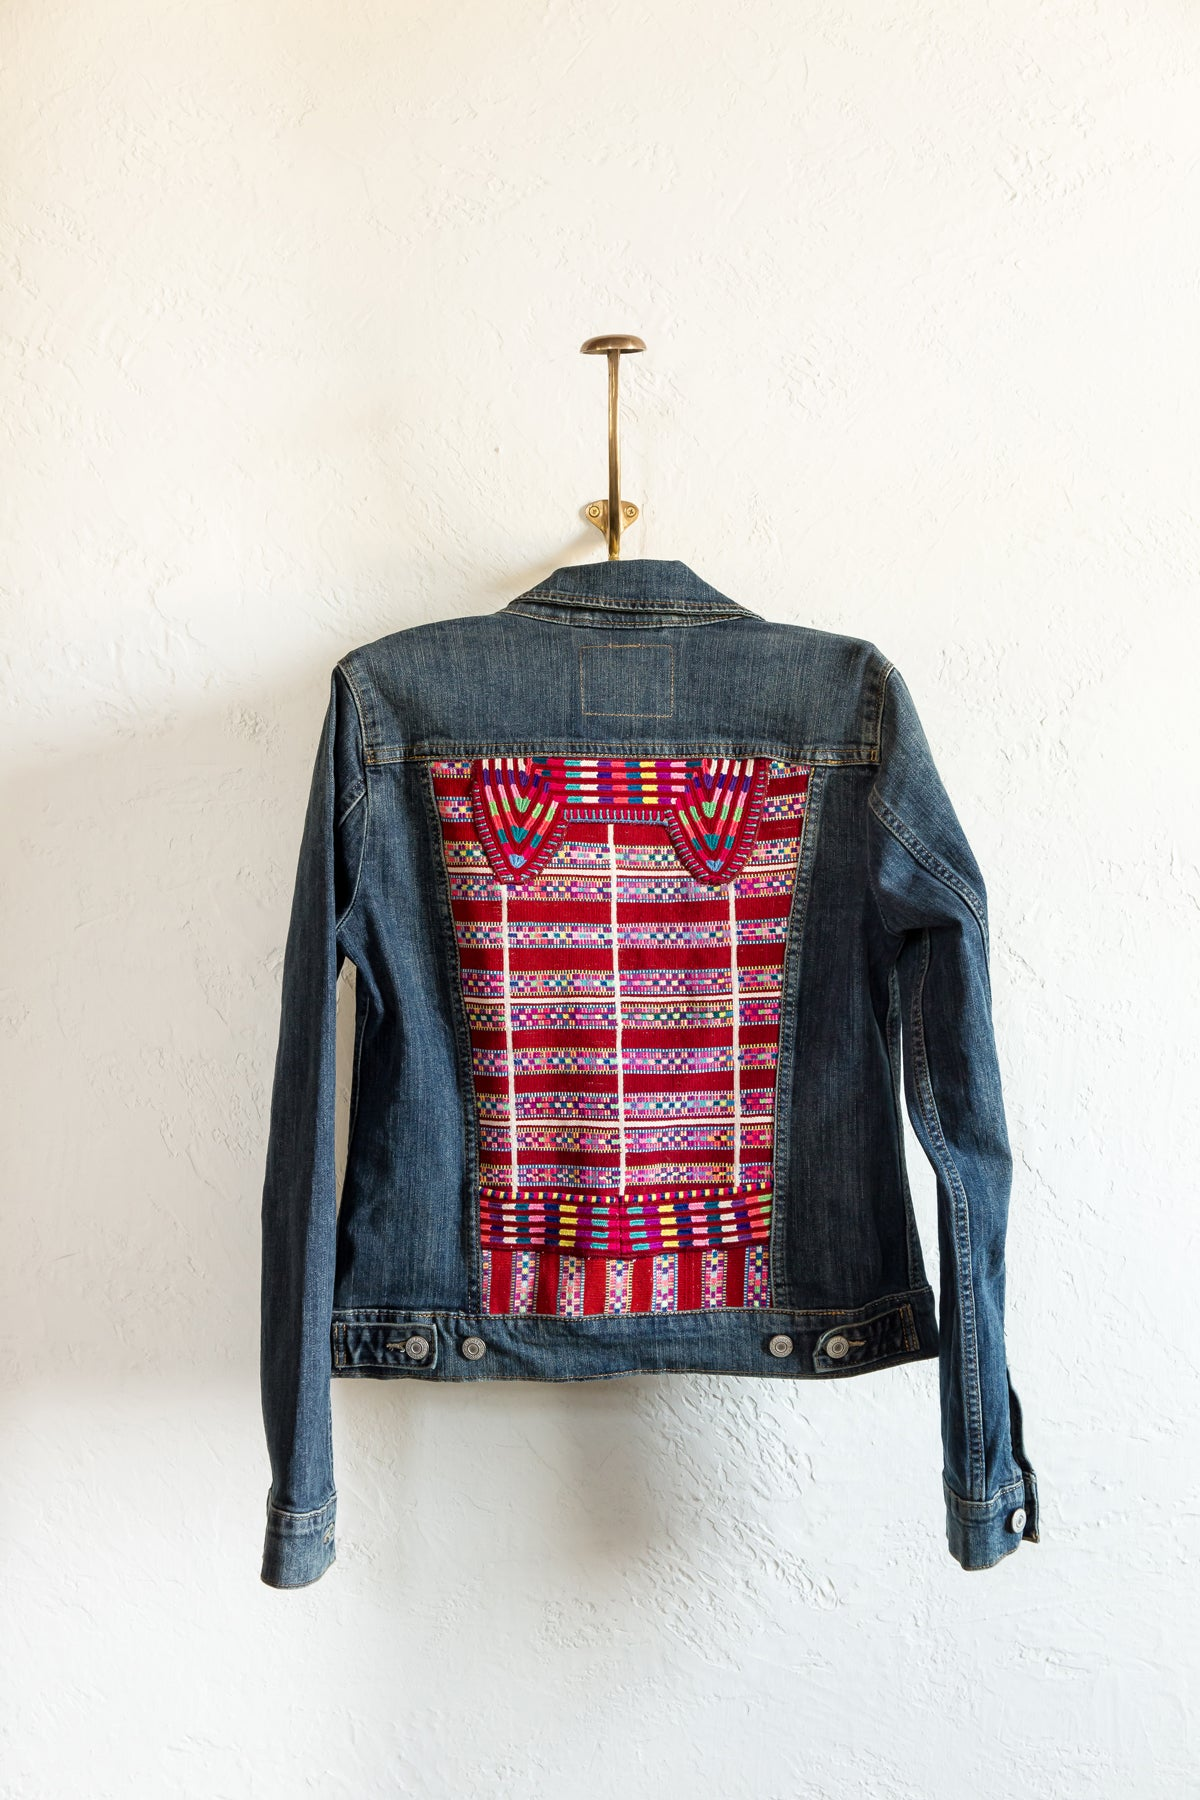 Cancuc Amor Jean Jacket - Small